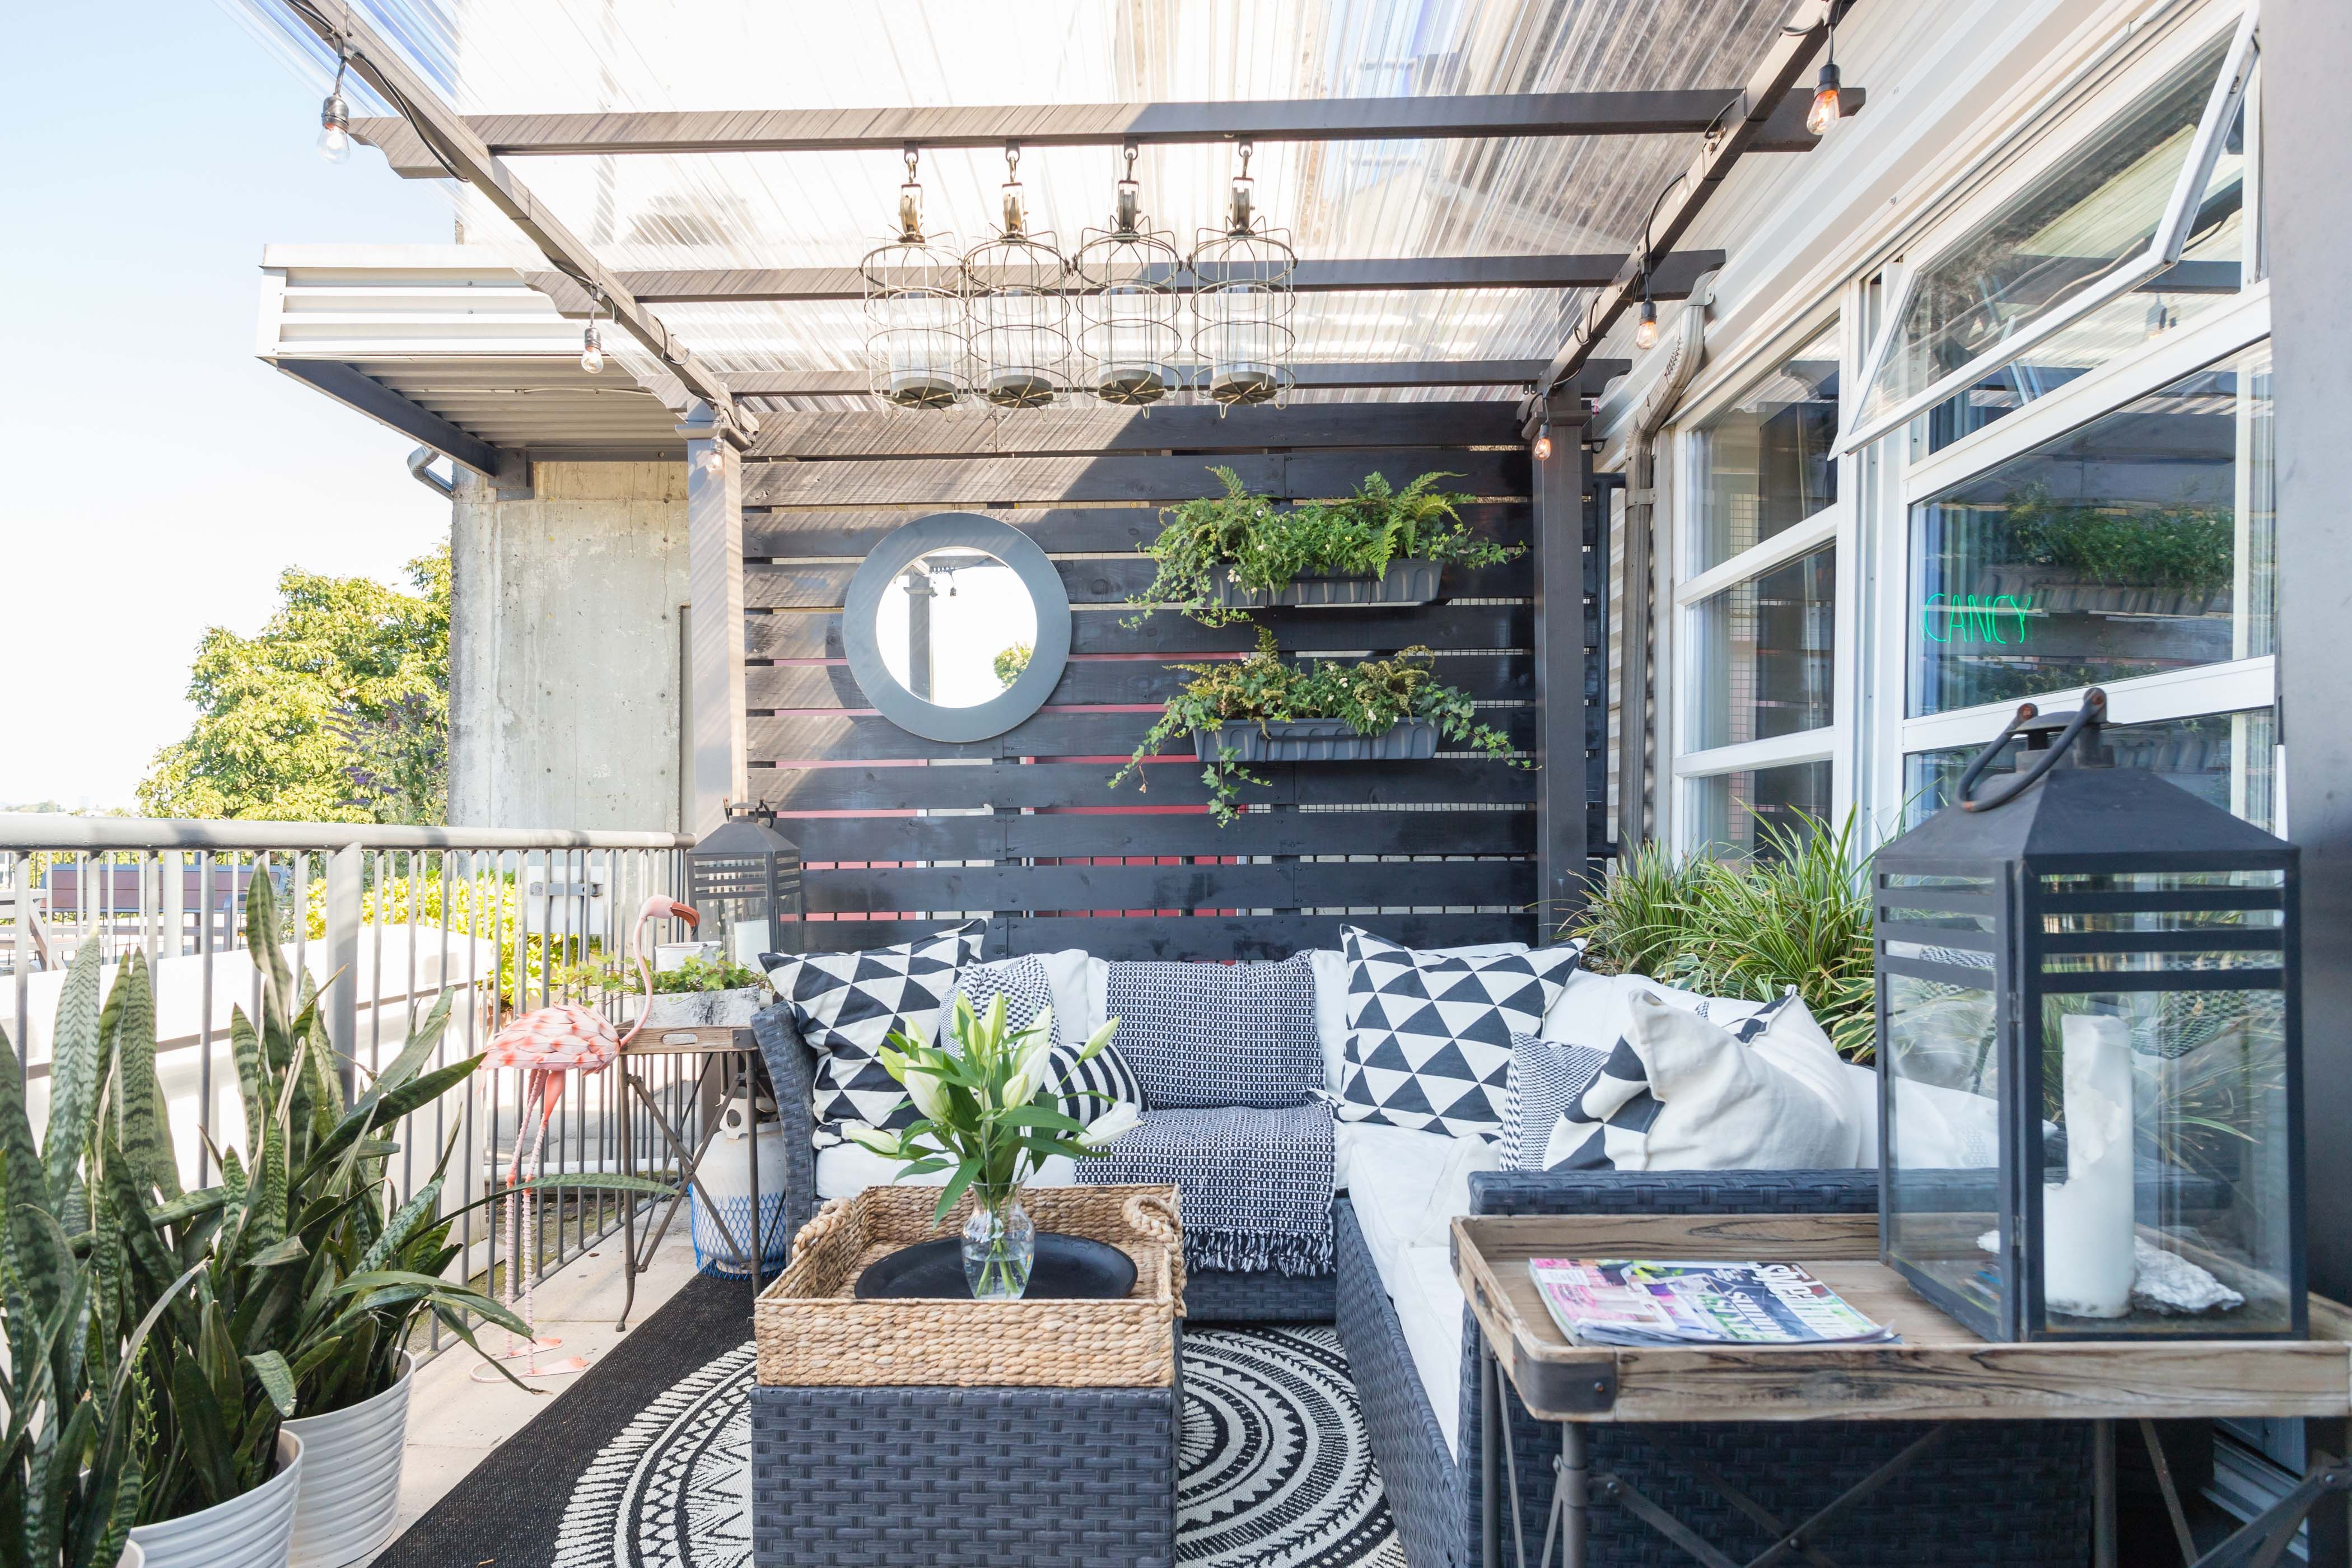 Forum on this topic: Step Inside The Industrial Penthouse With A , step-inside-the-industrial-penthouse-with-a/